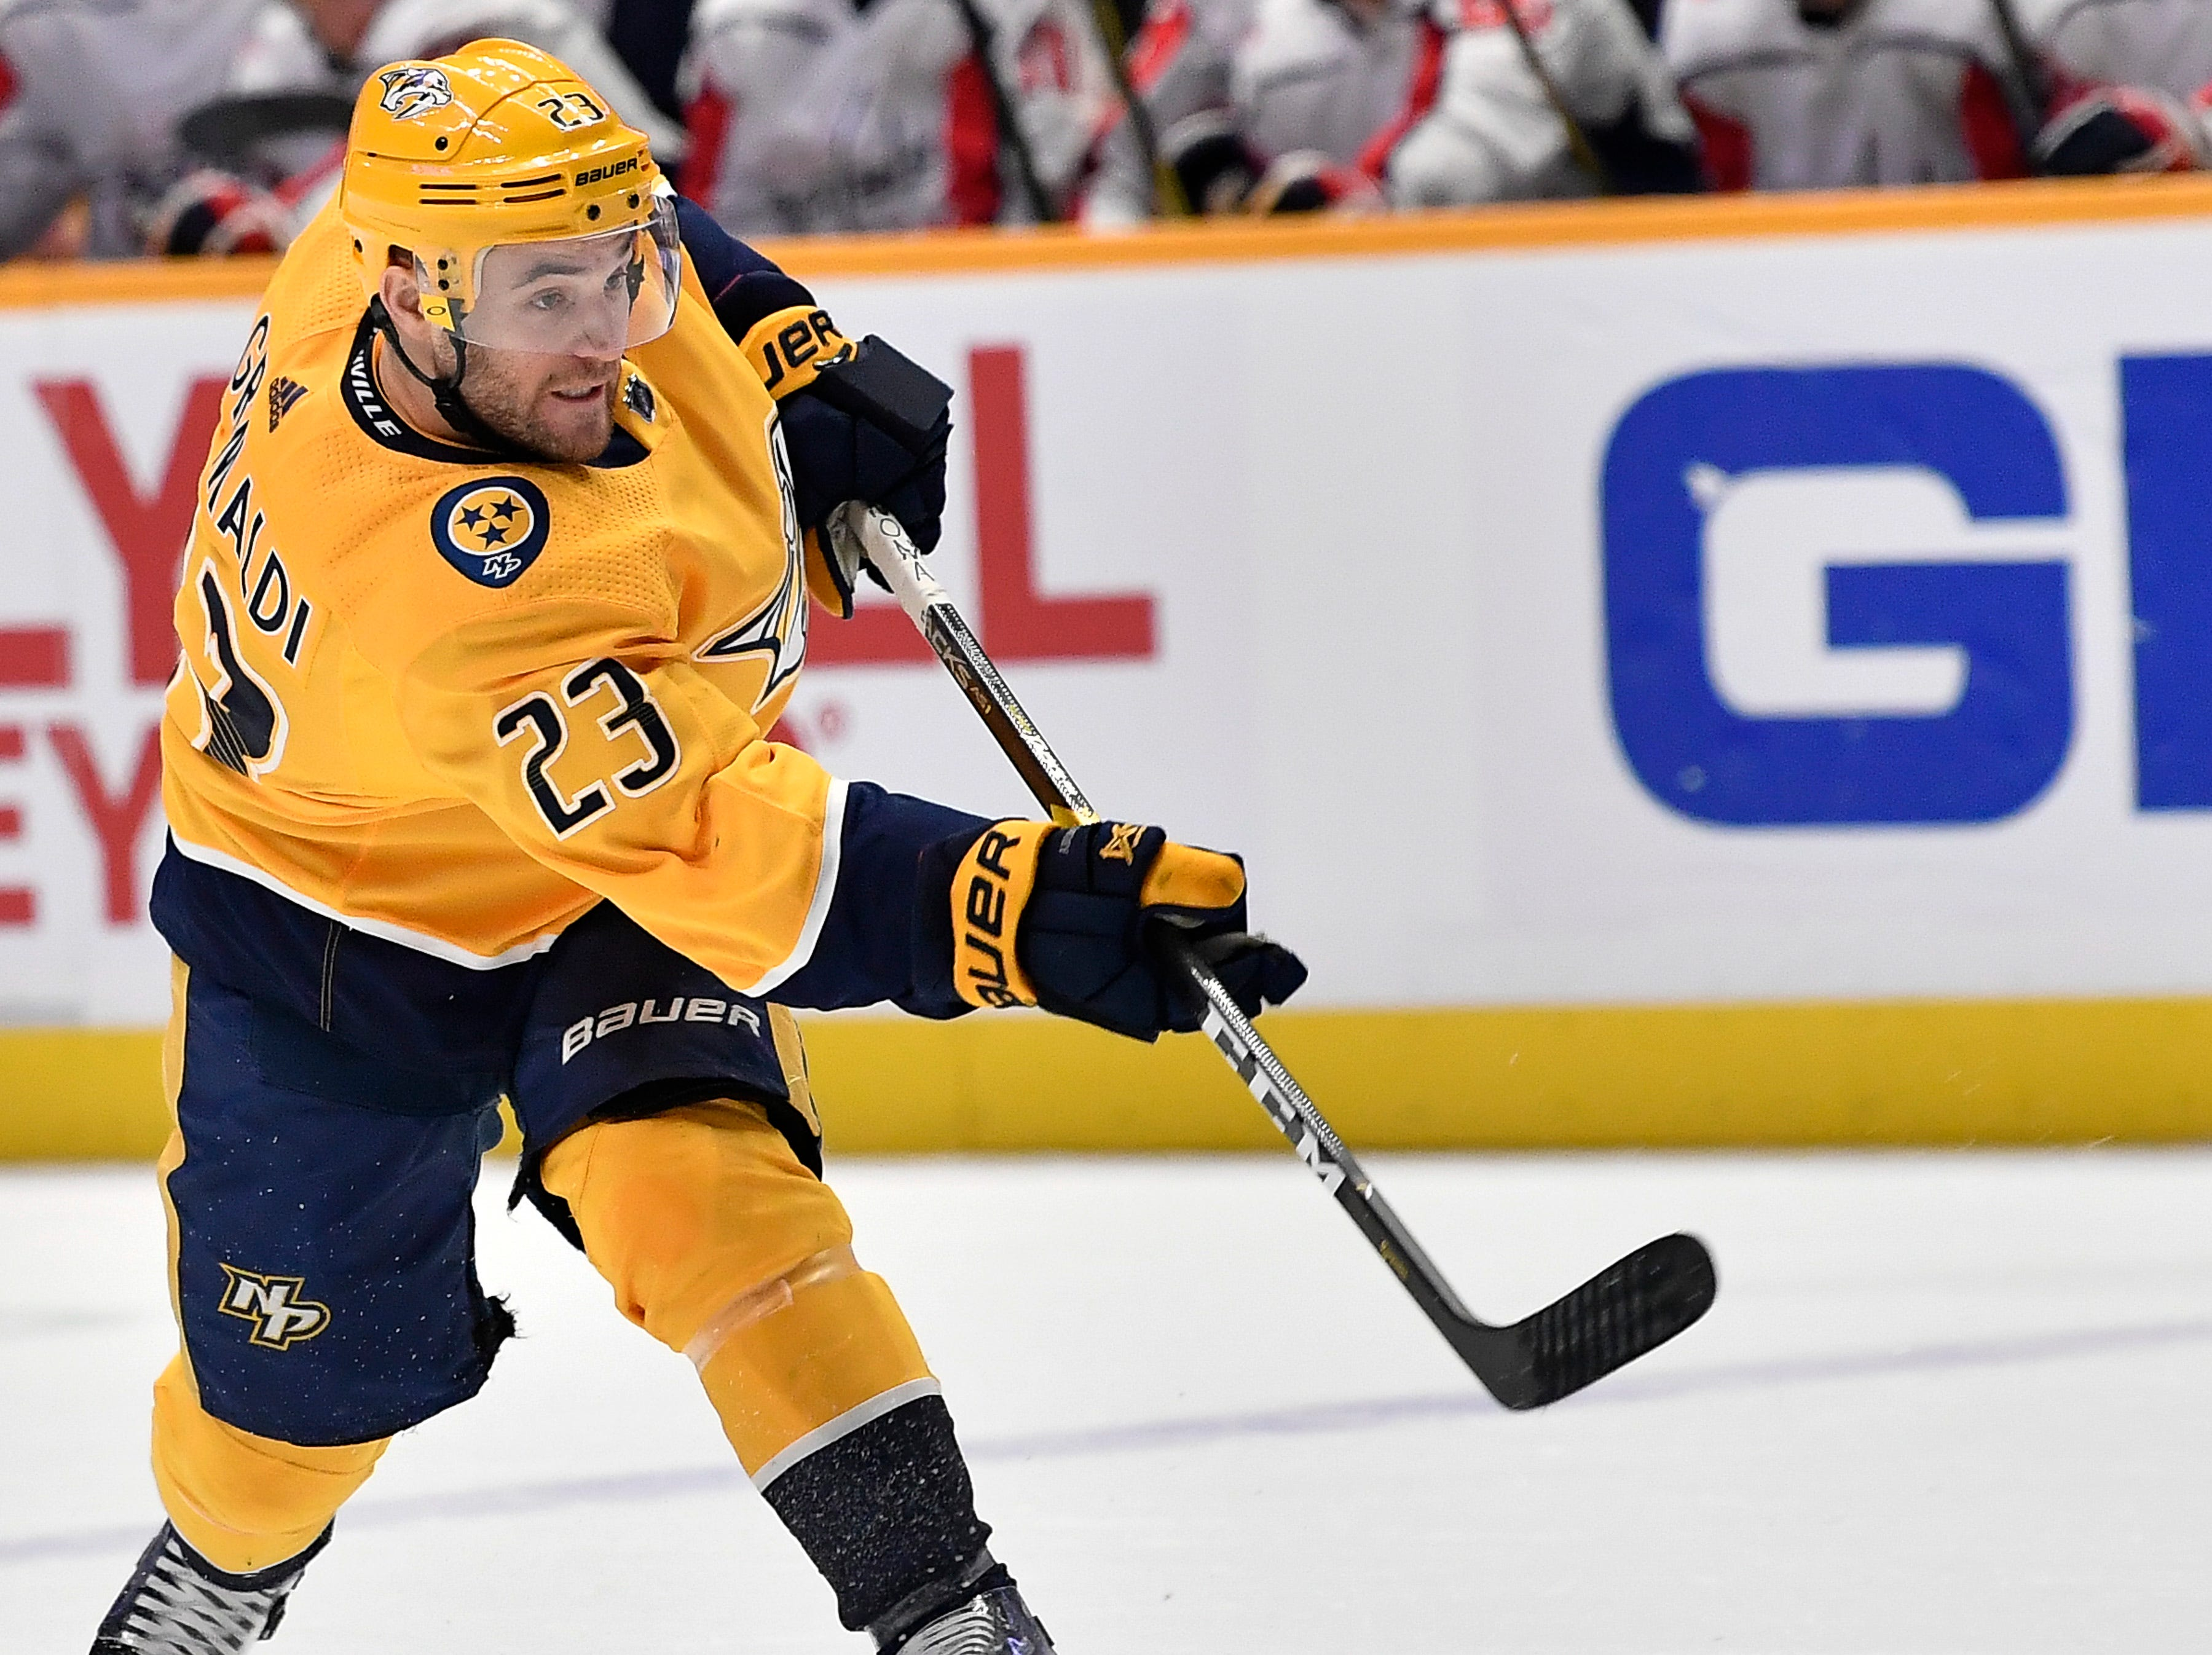 Predators center Rocco Grimaldi (23) shoots the puck during the first period against the Capitals at Bridgestone Arena Tuesday, Jan. 15, 2019, in Nashville, Tenn.